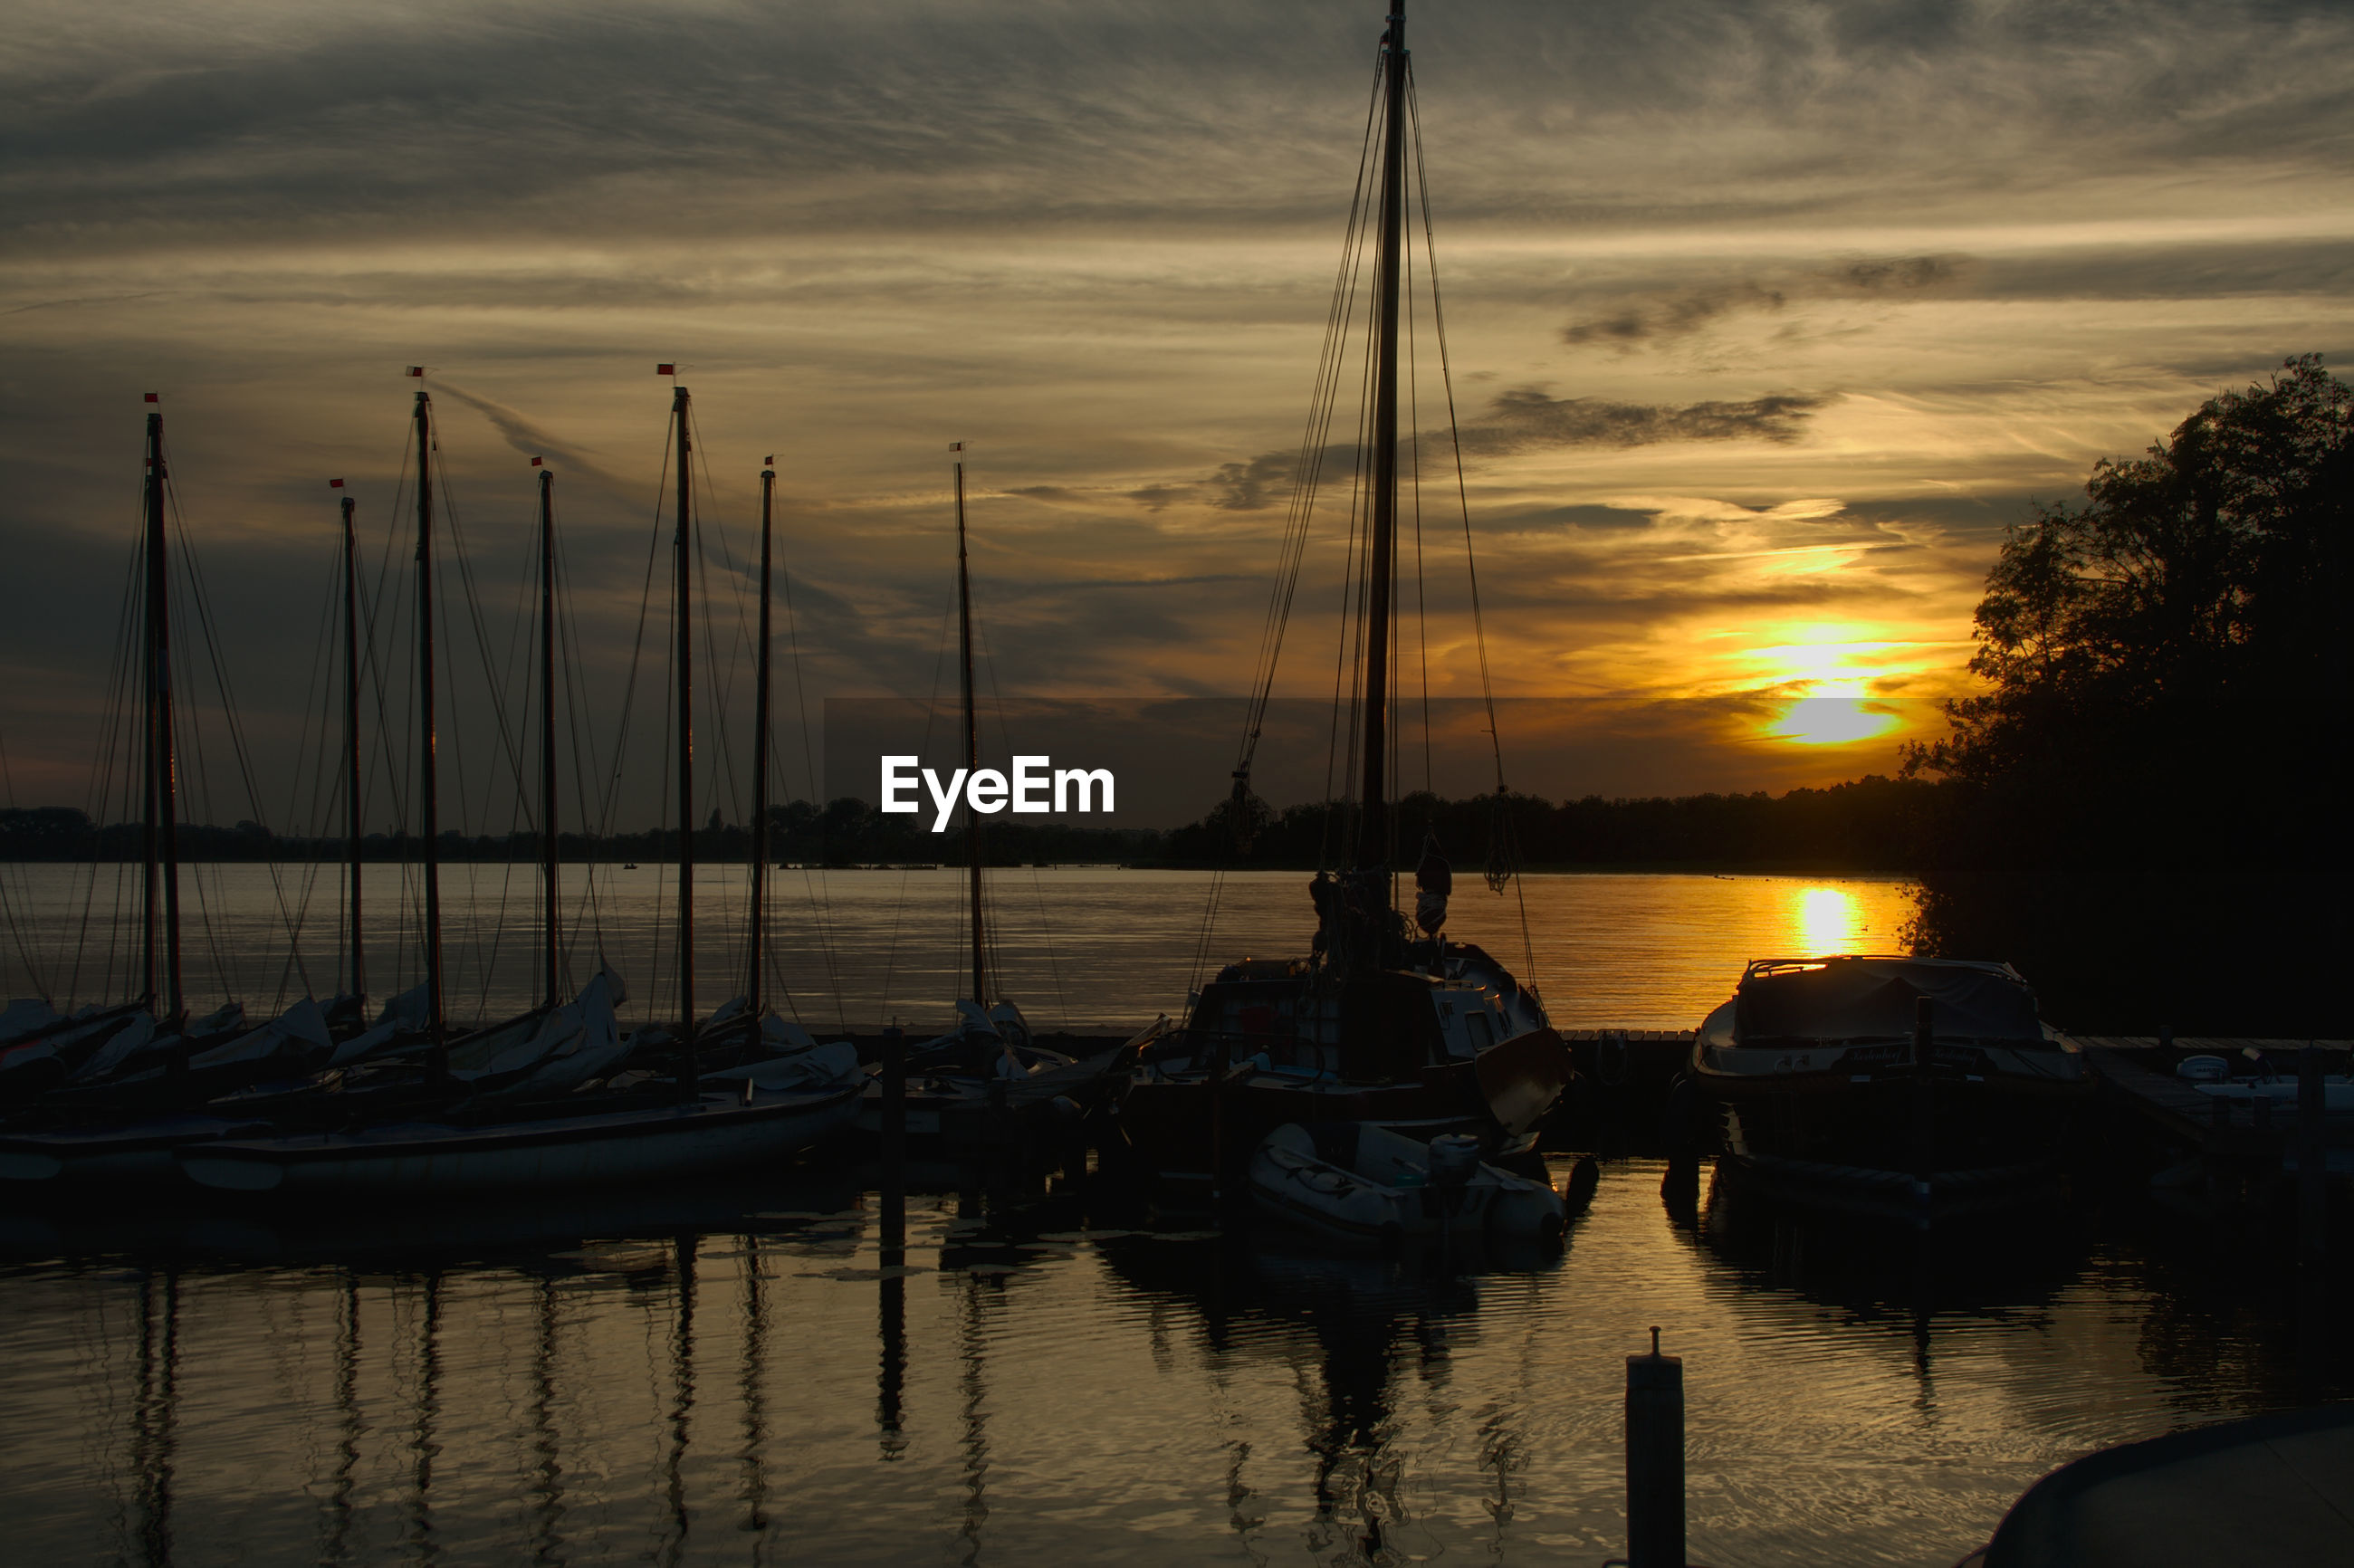 SAILBOATS MOORED ON SEA DURING SUNSET